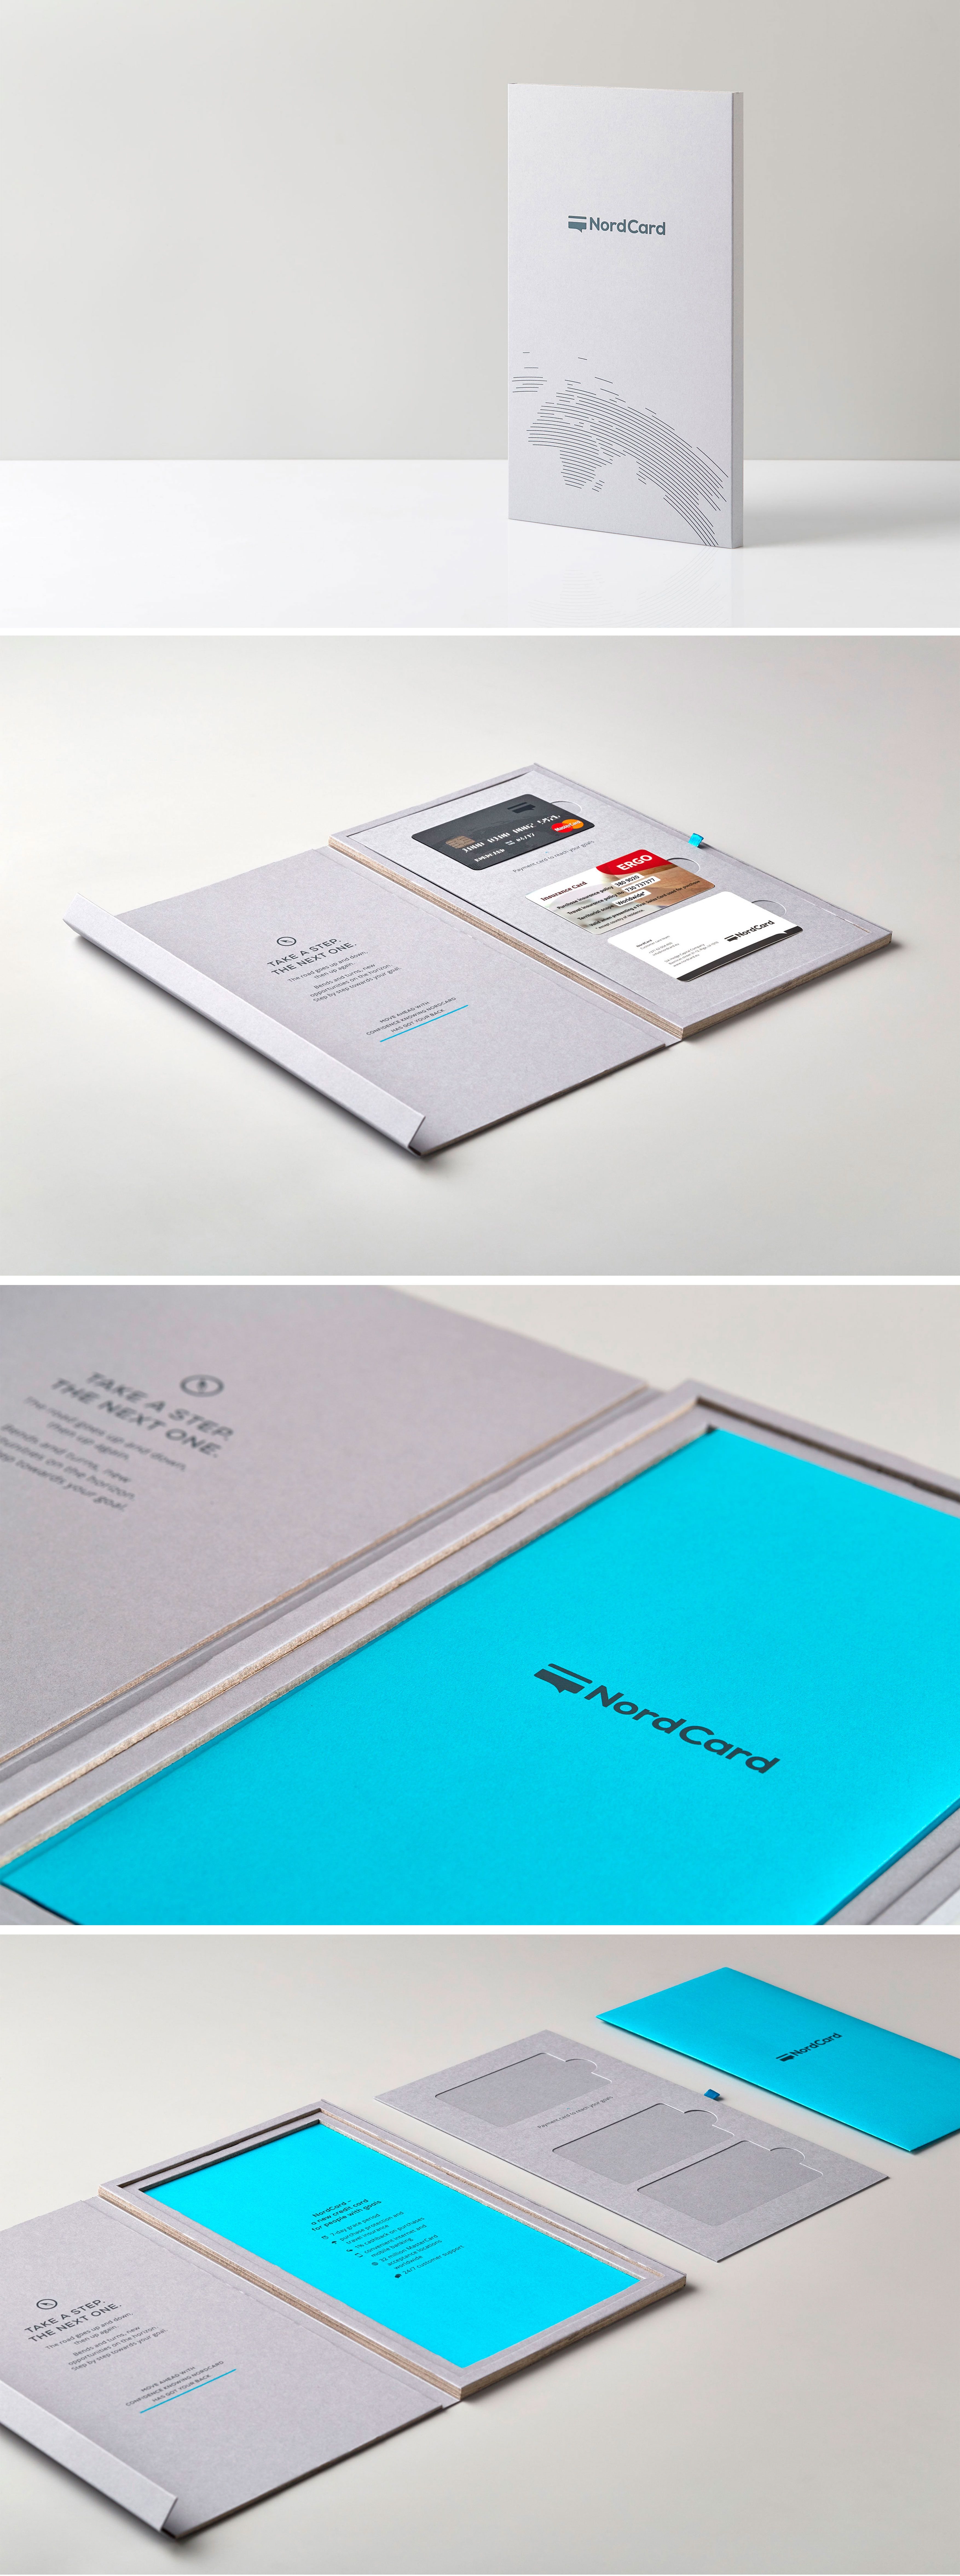 Direct mail packaging design for nordcard credit card for people business cards magicingreecefo Gallery